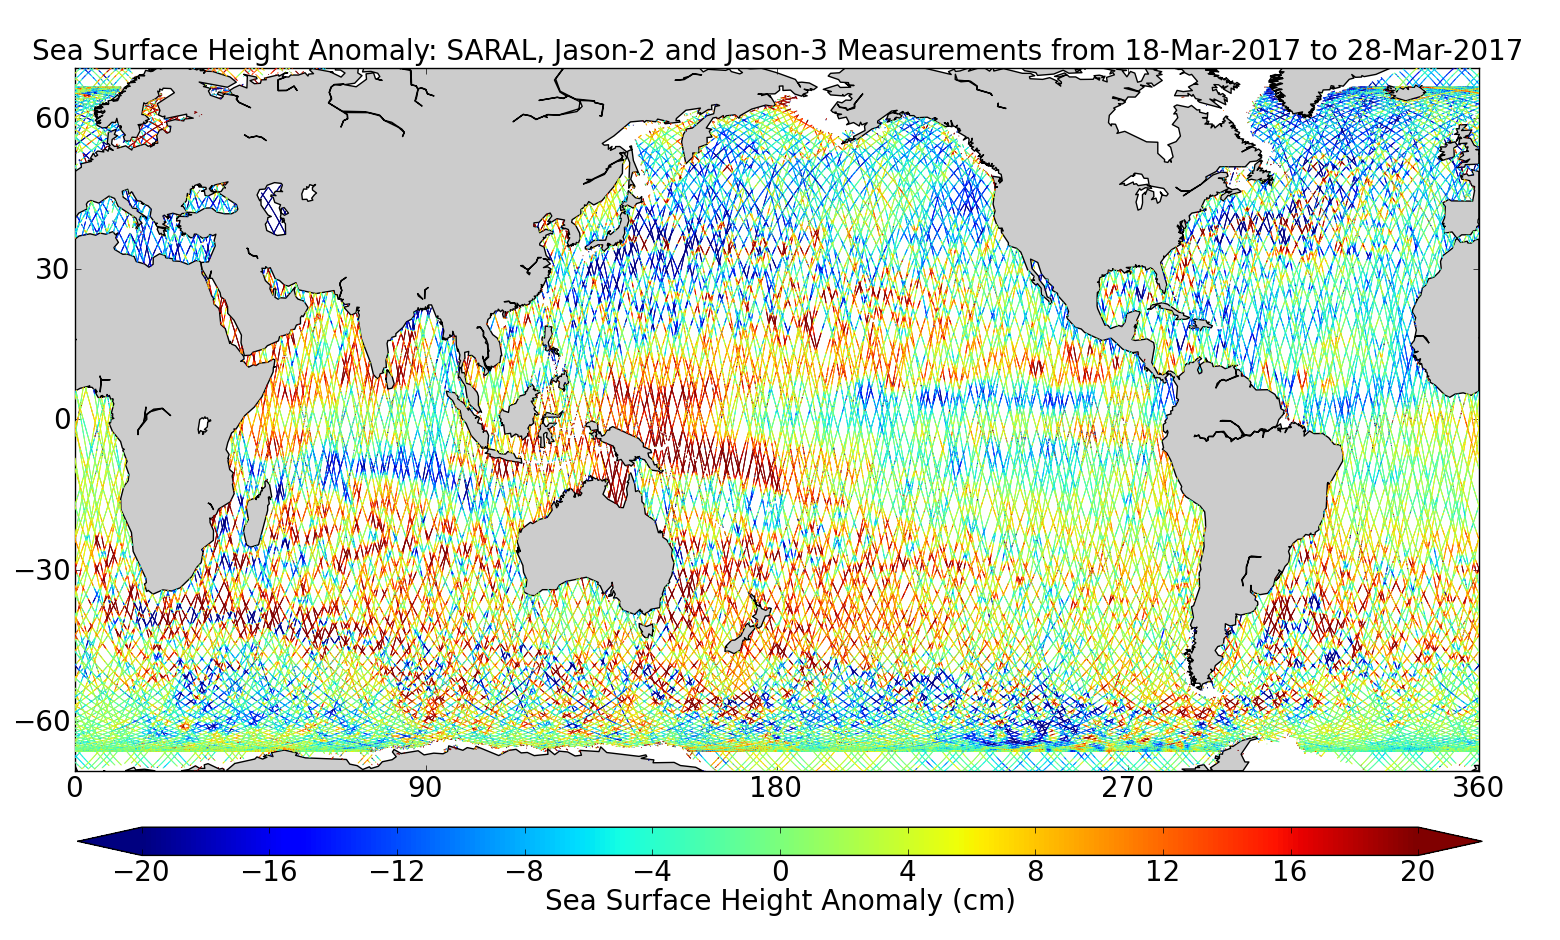 Sea Surface Height Anomaly: SARAL, Jason-2 and Jason-3 Measurements from 18-Mar-2017 to 28-Mar-2017